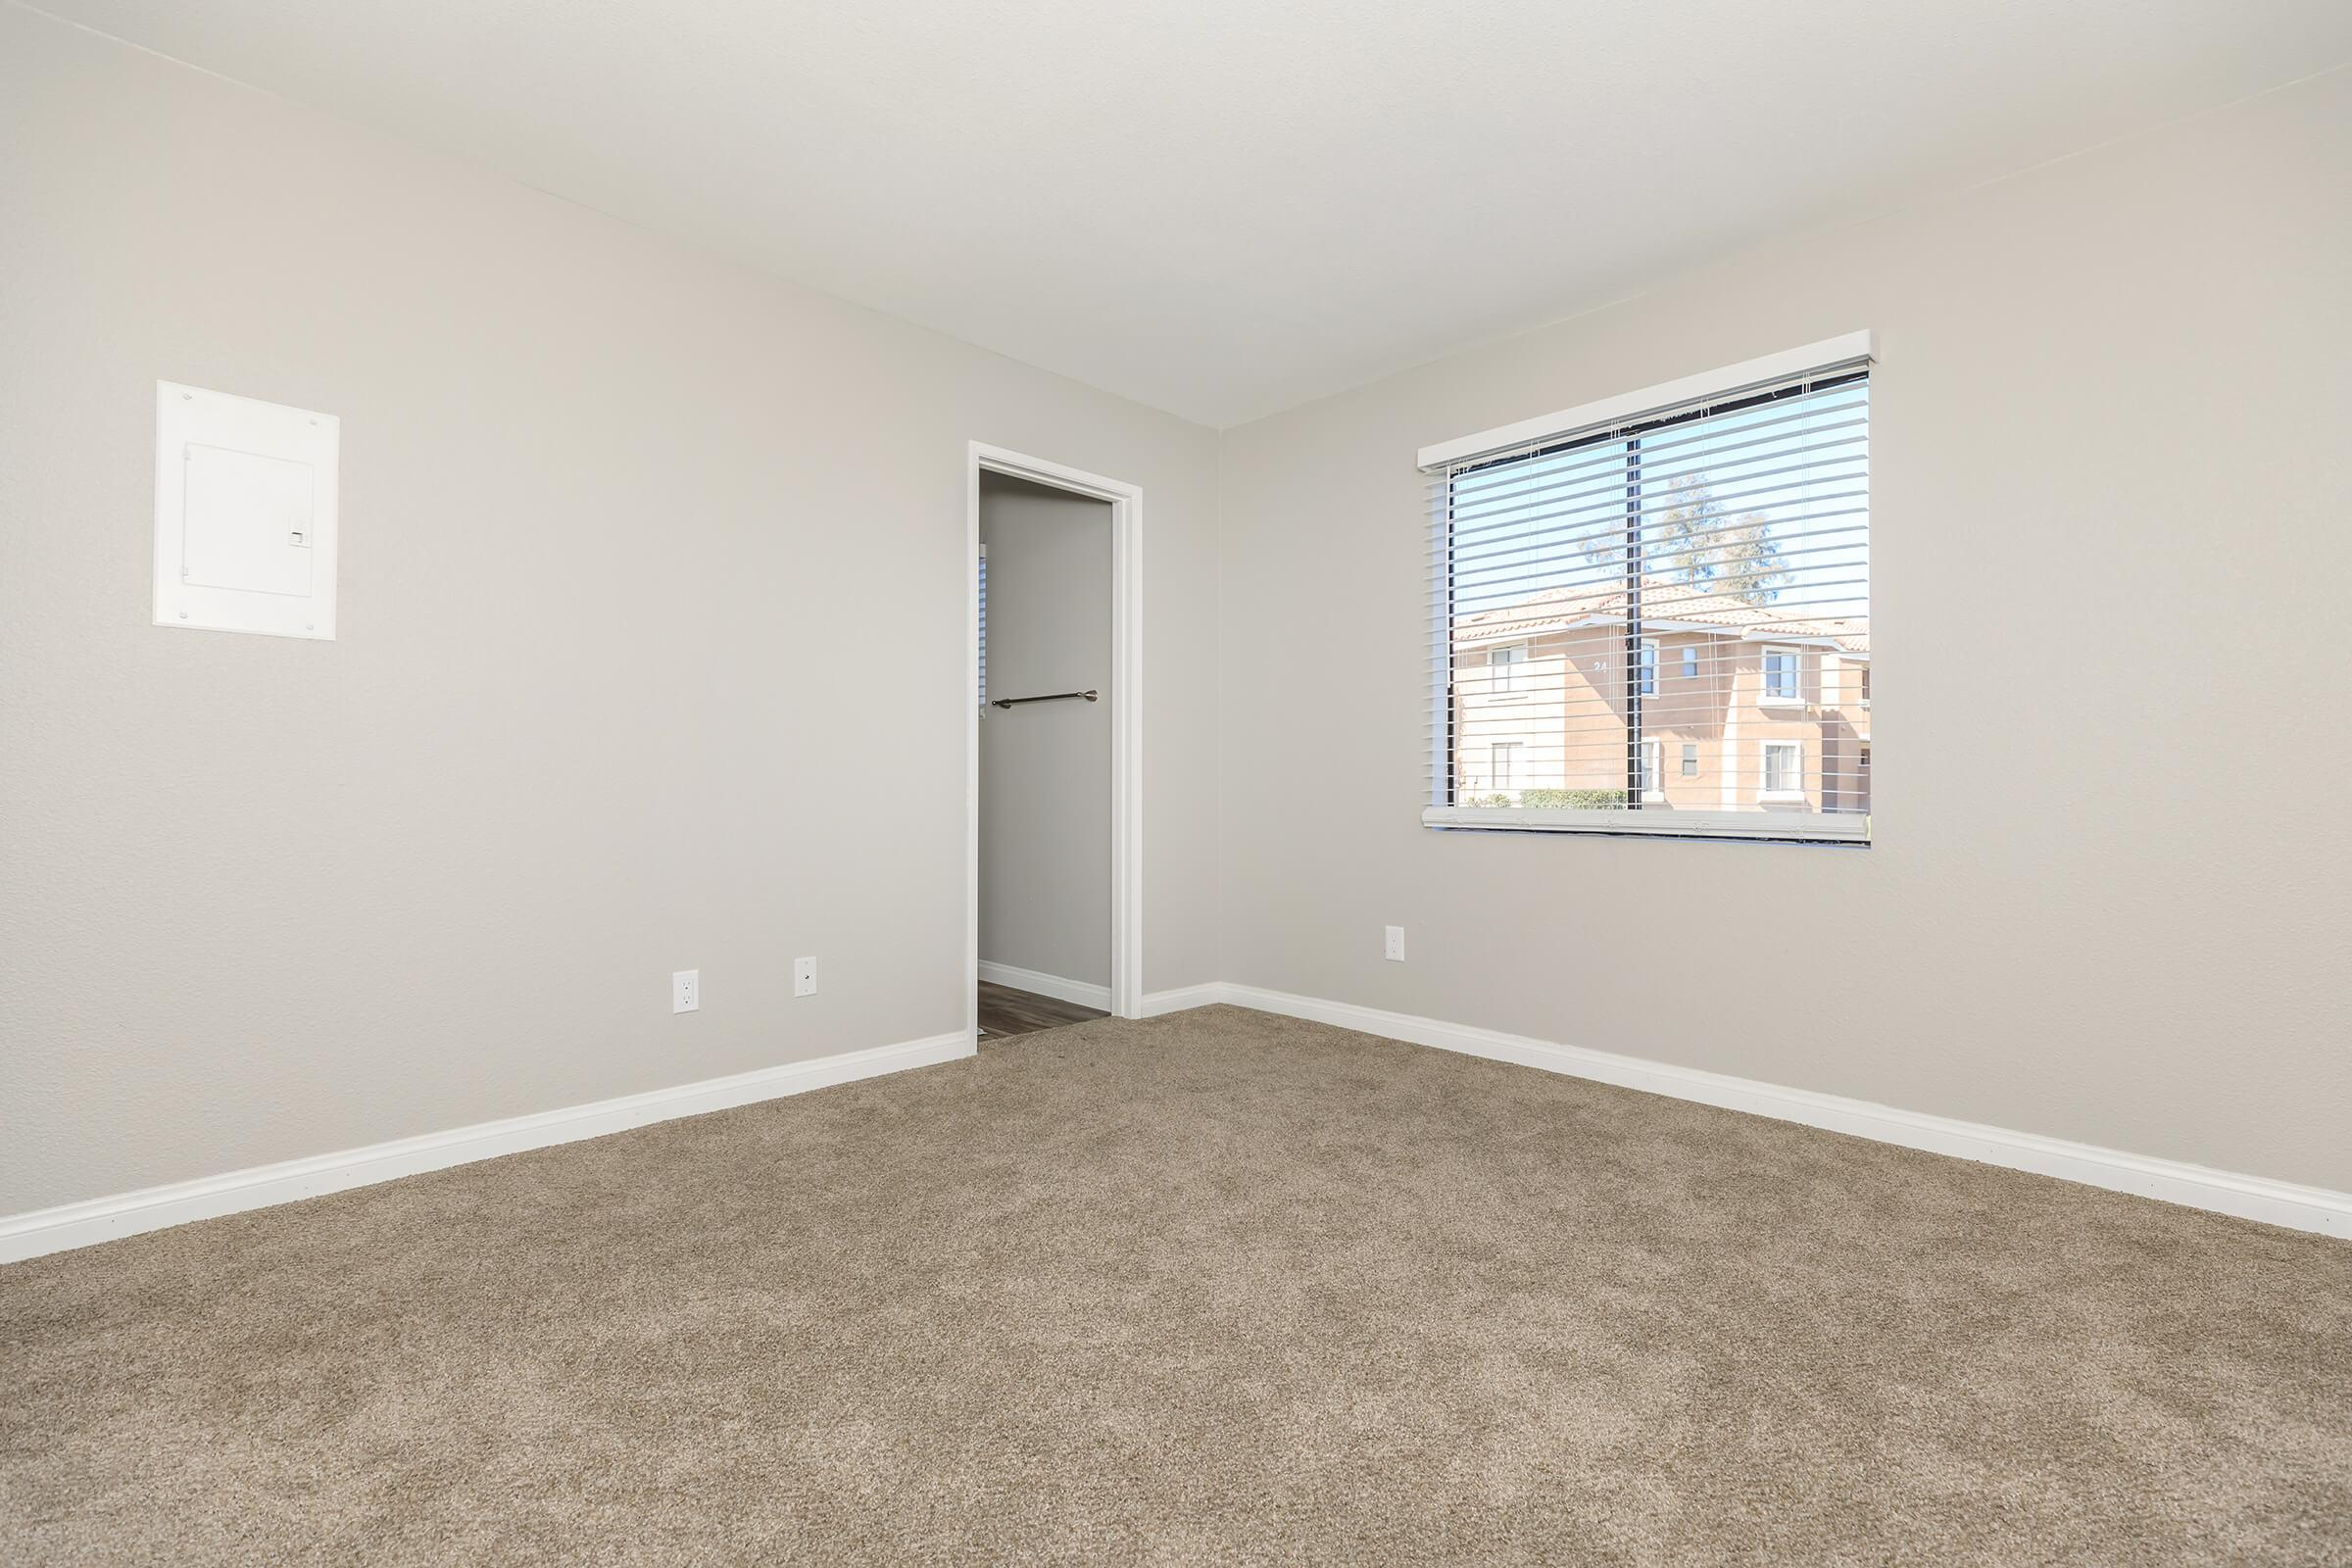 WALL TO WALL CARPET IN SMOKETREE APARTMENTS